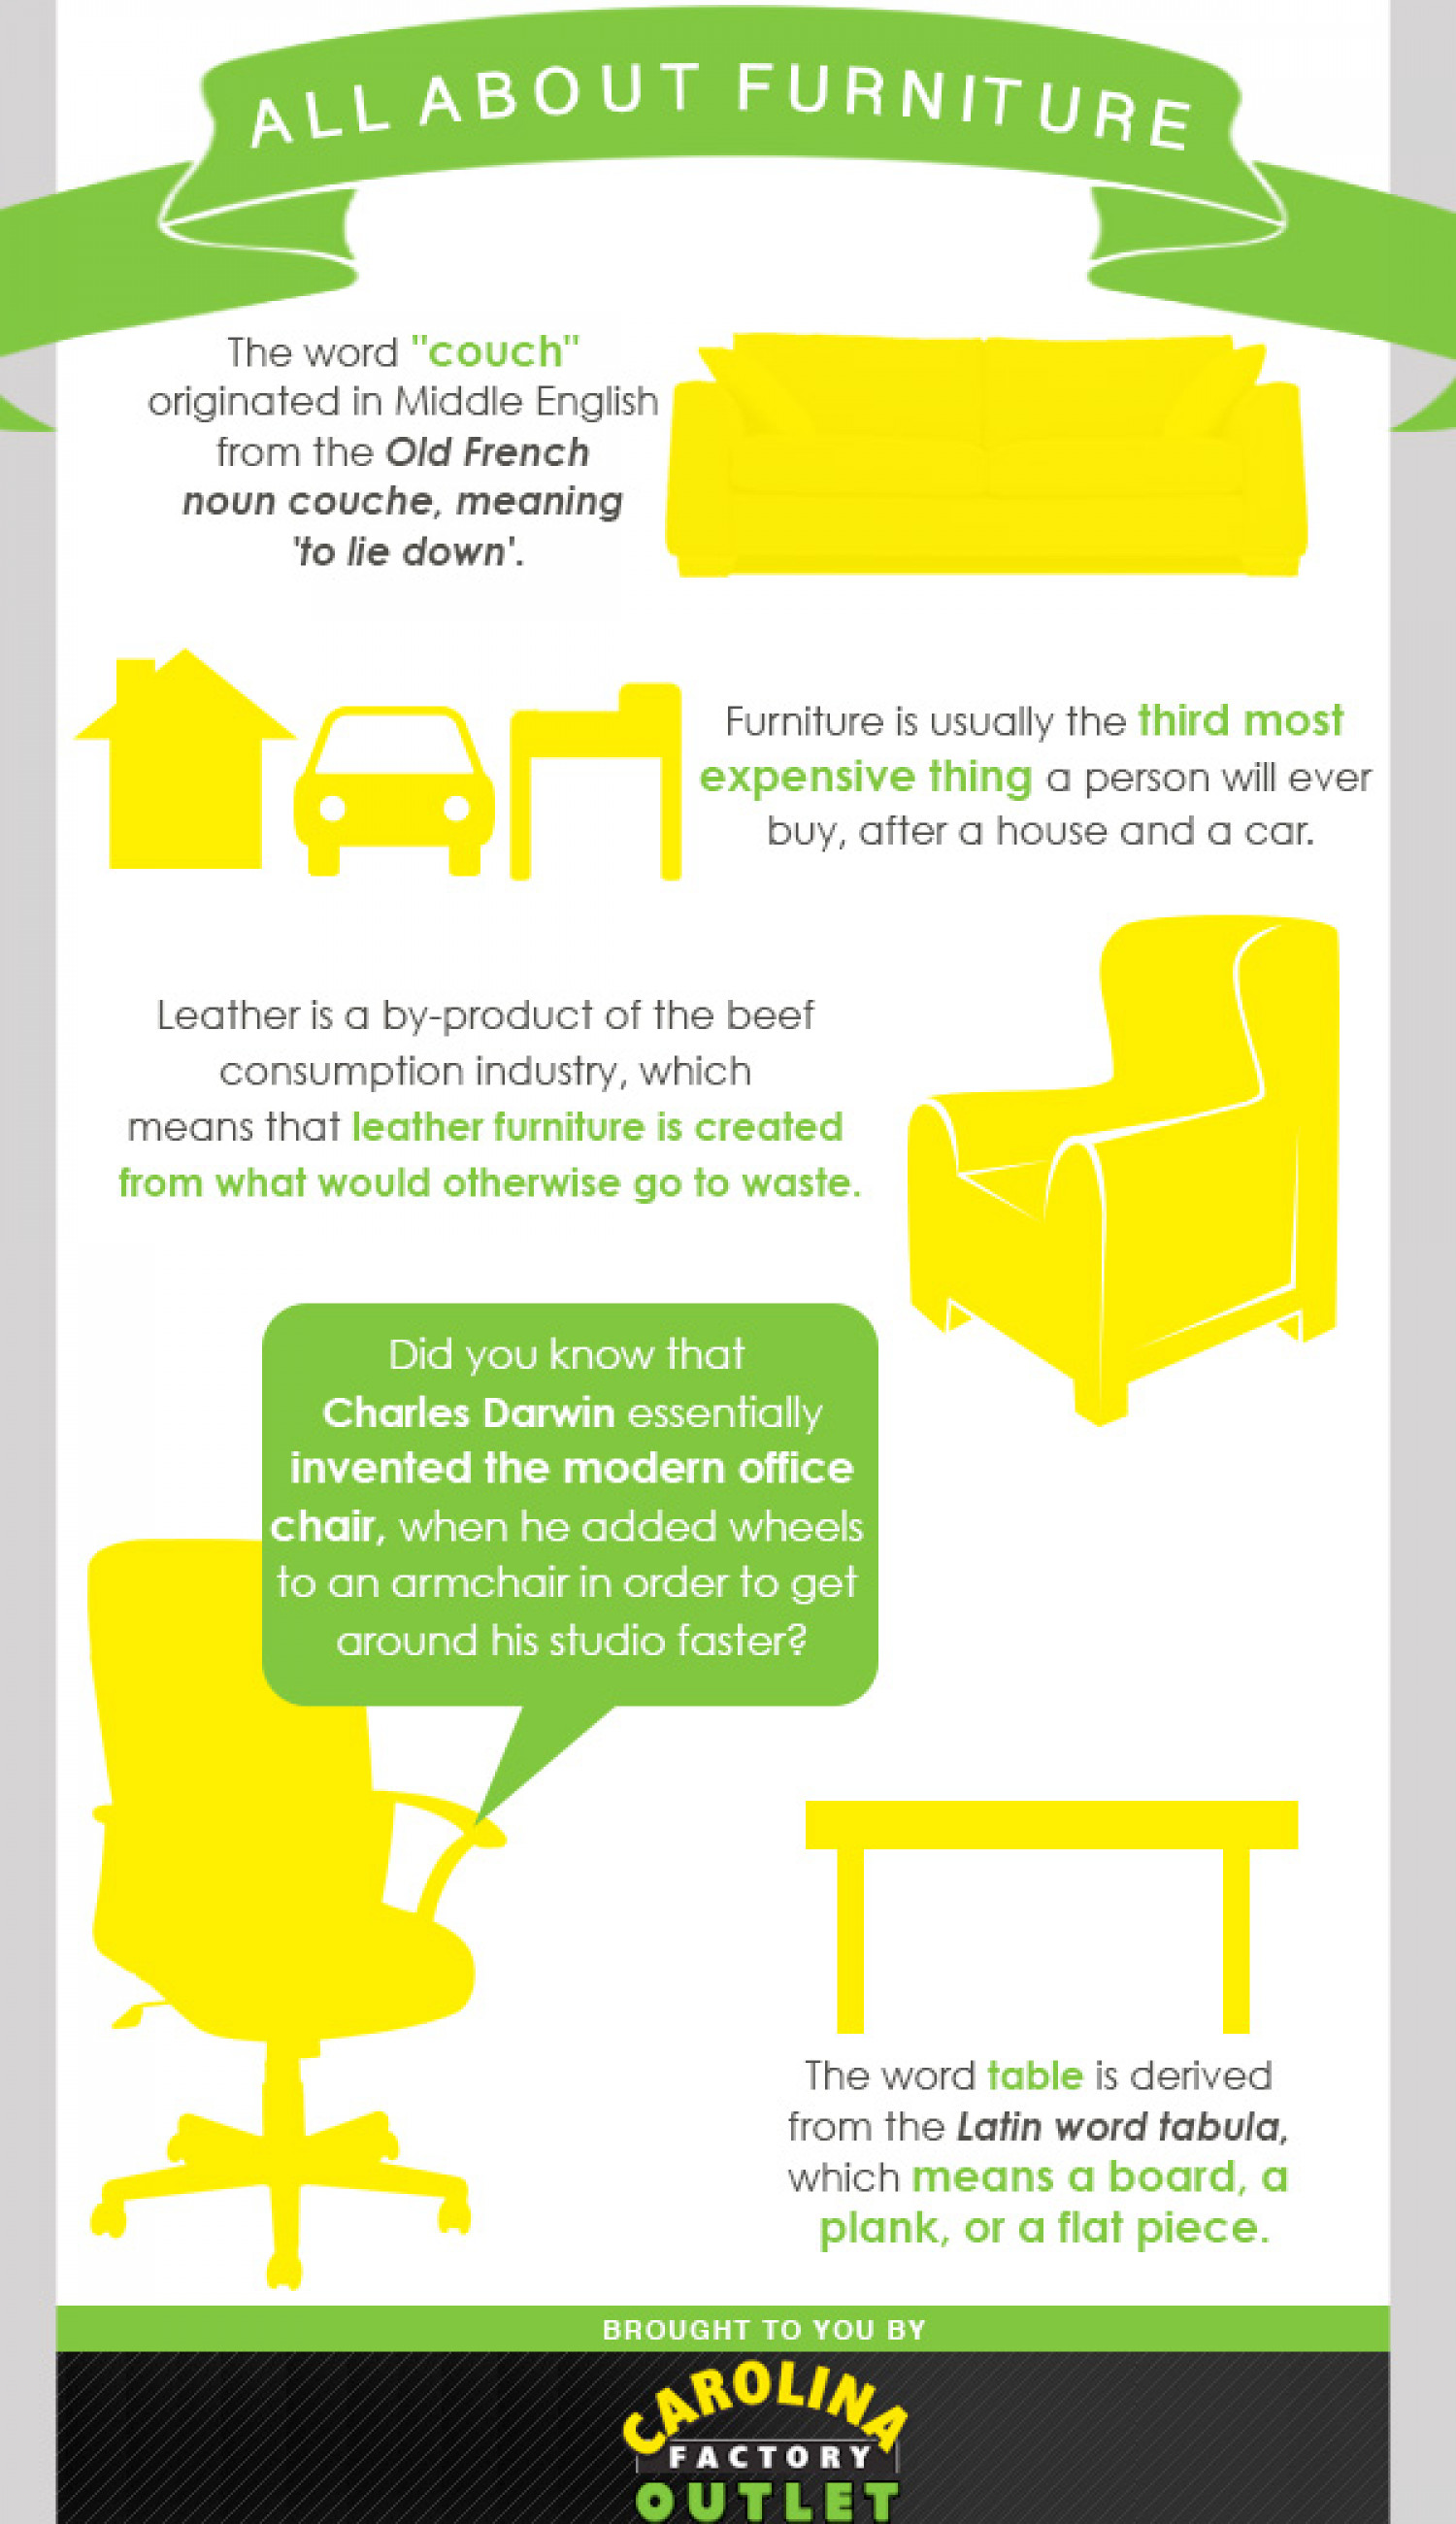 All About Furniture Infographic